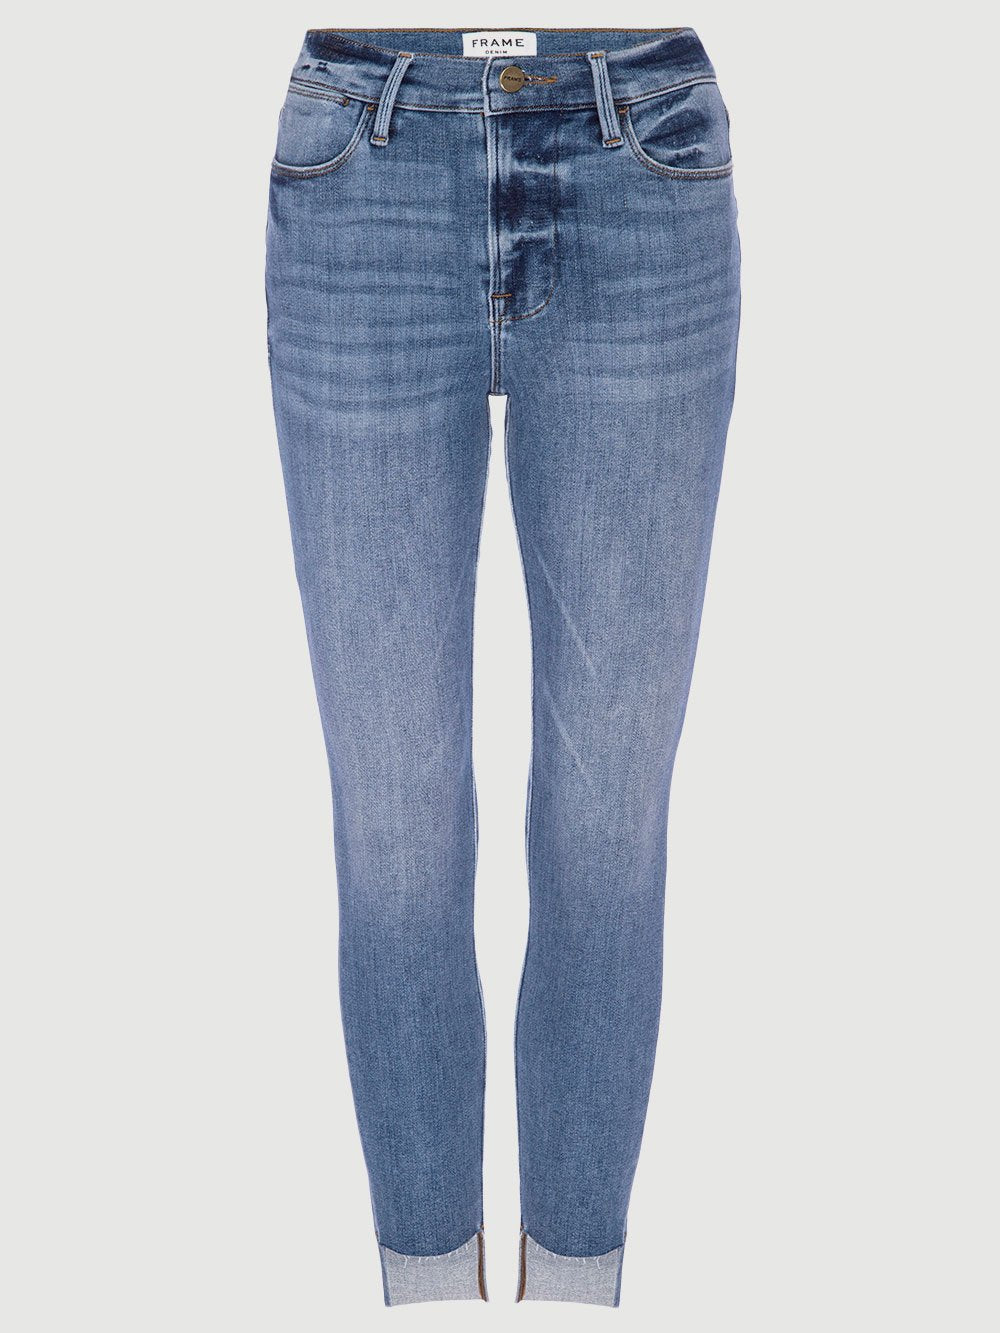 Le High Raw Stagger Skinny Jean - Westway-FRAME-Over the Rainbow